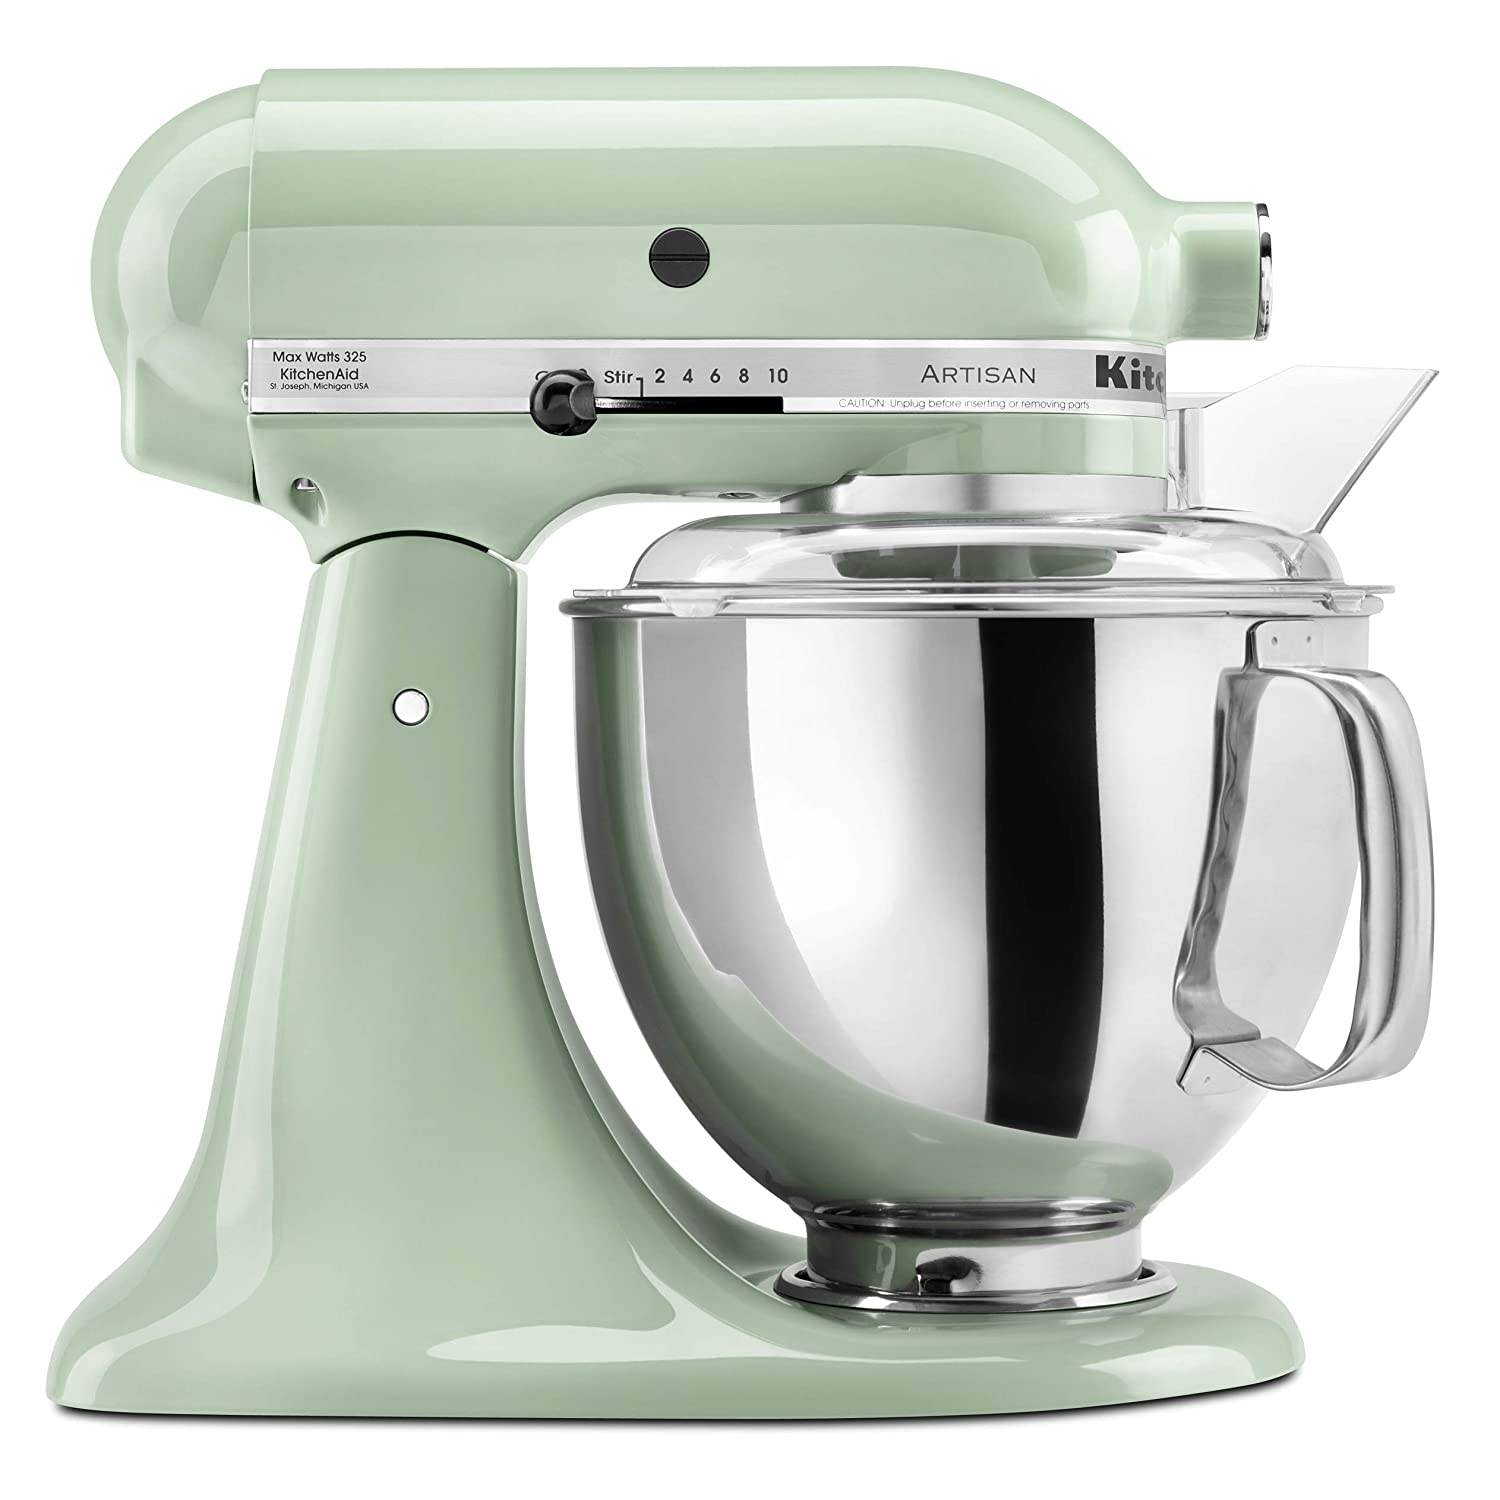 Pistachio green Kitchenaid Mixer